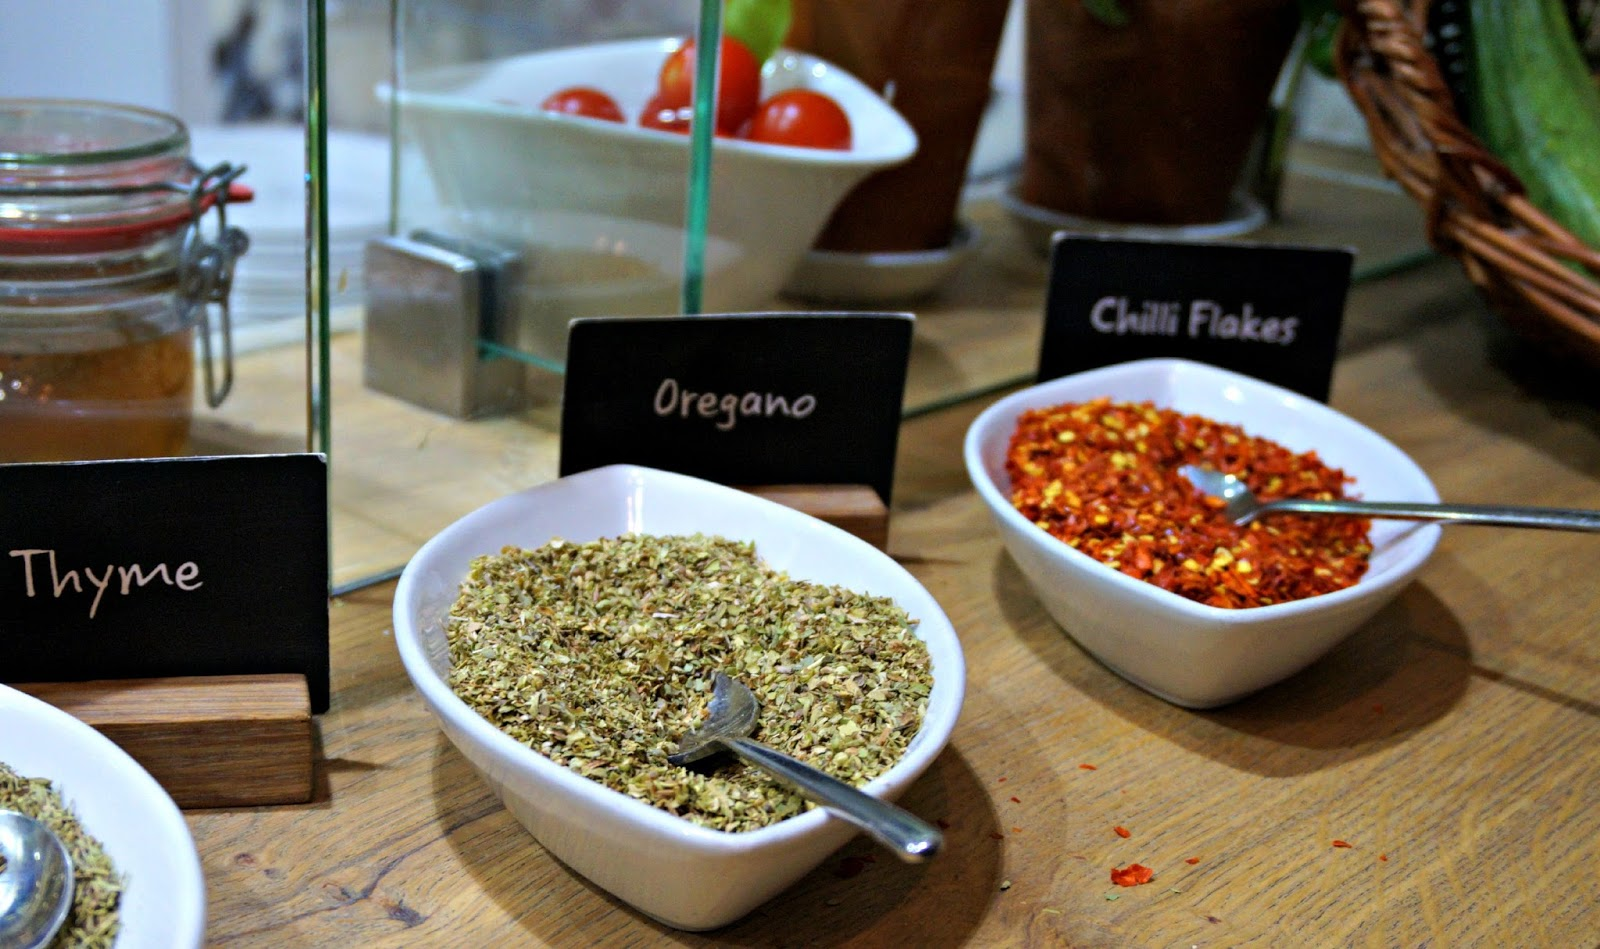 Selection of herbs in bowls